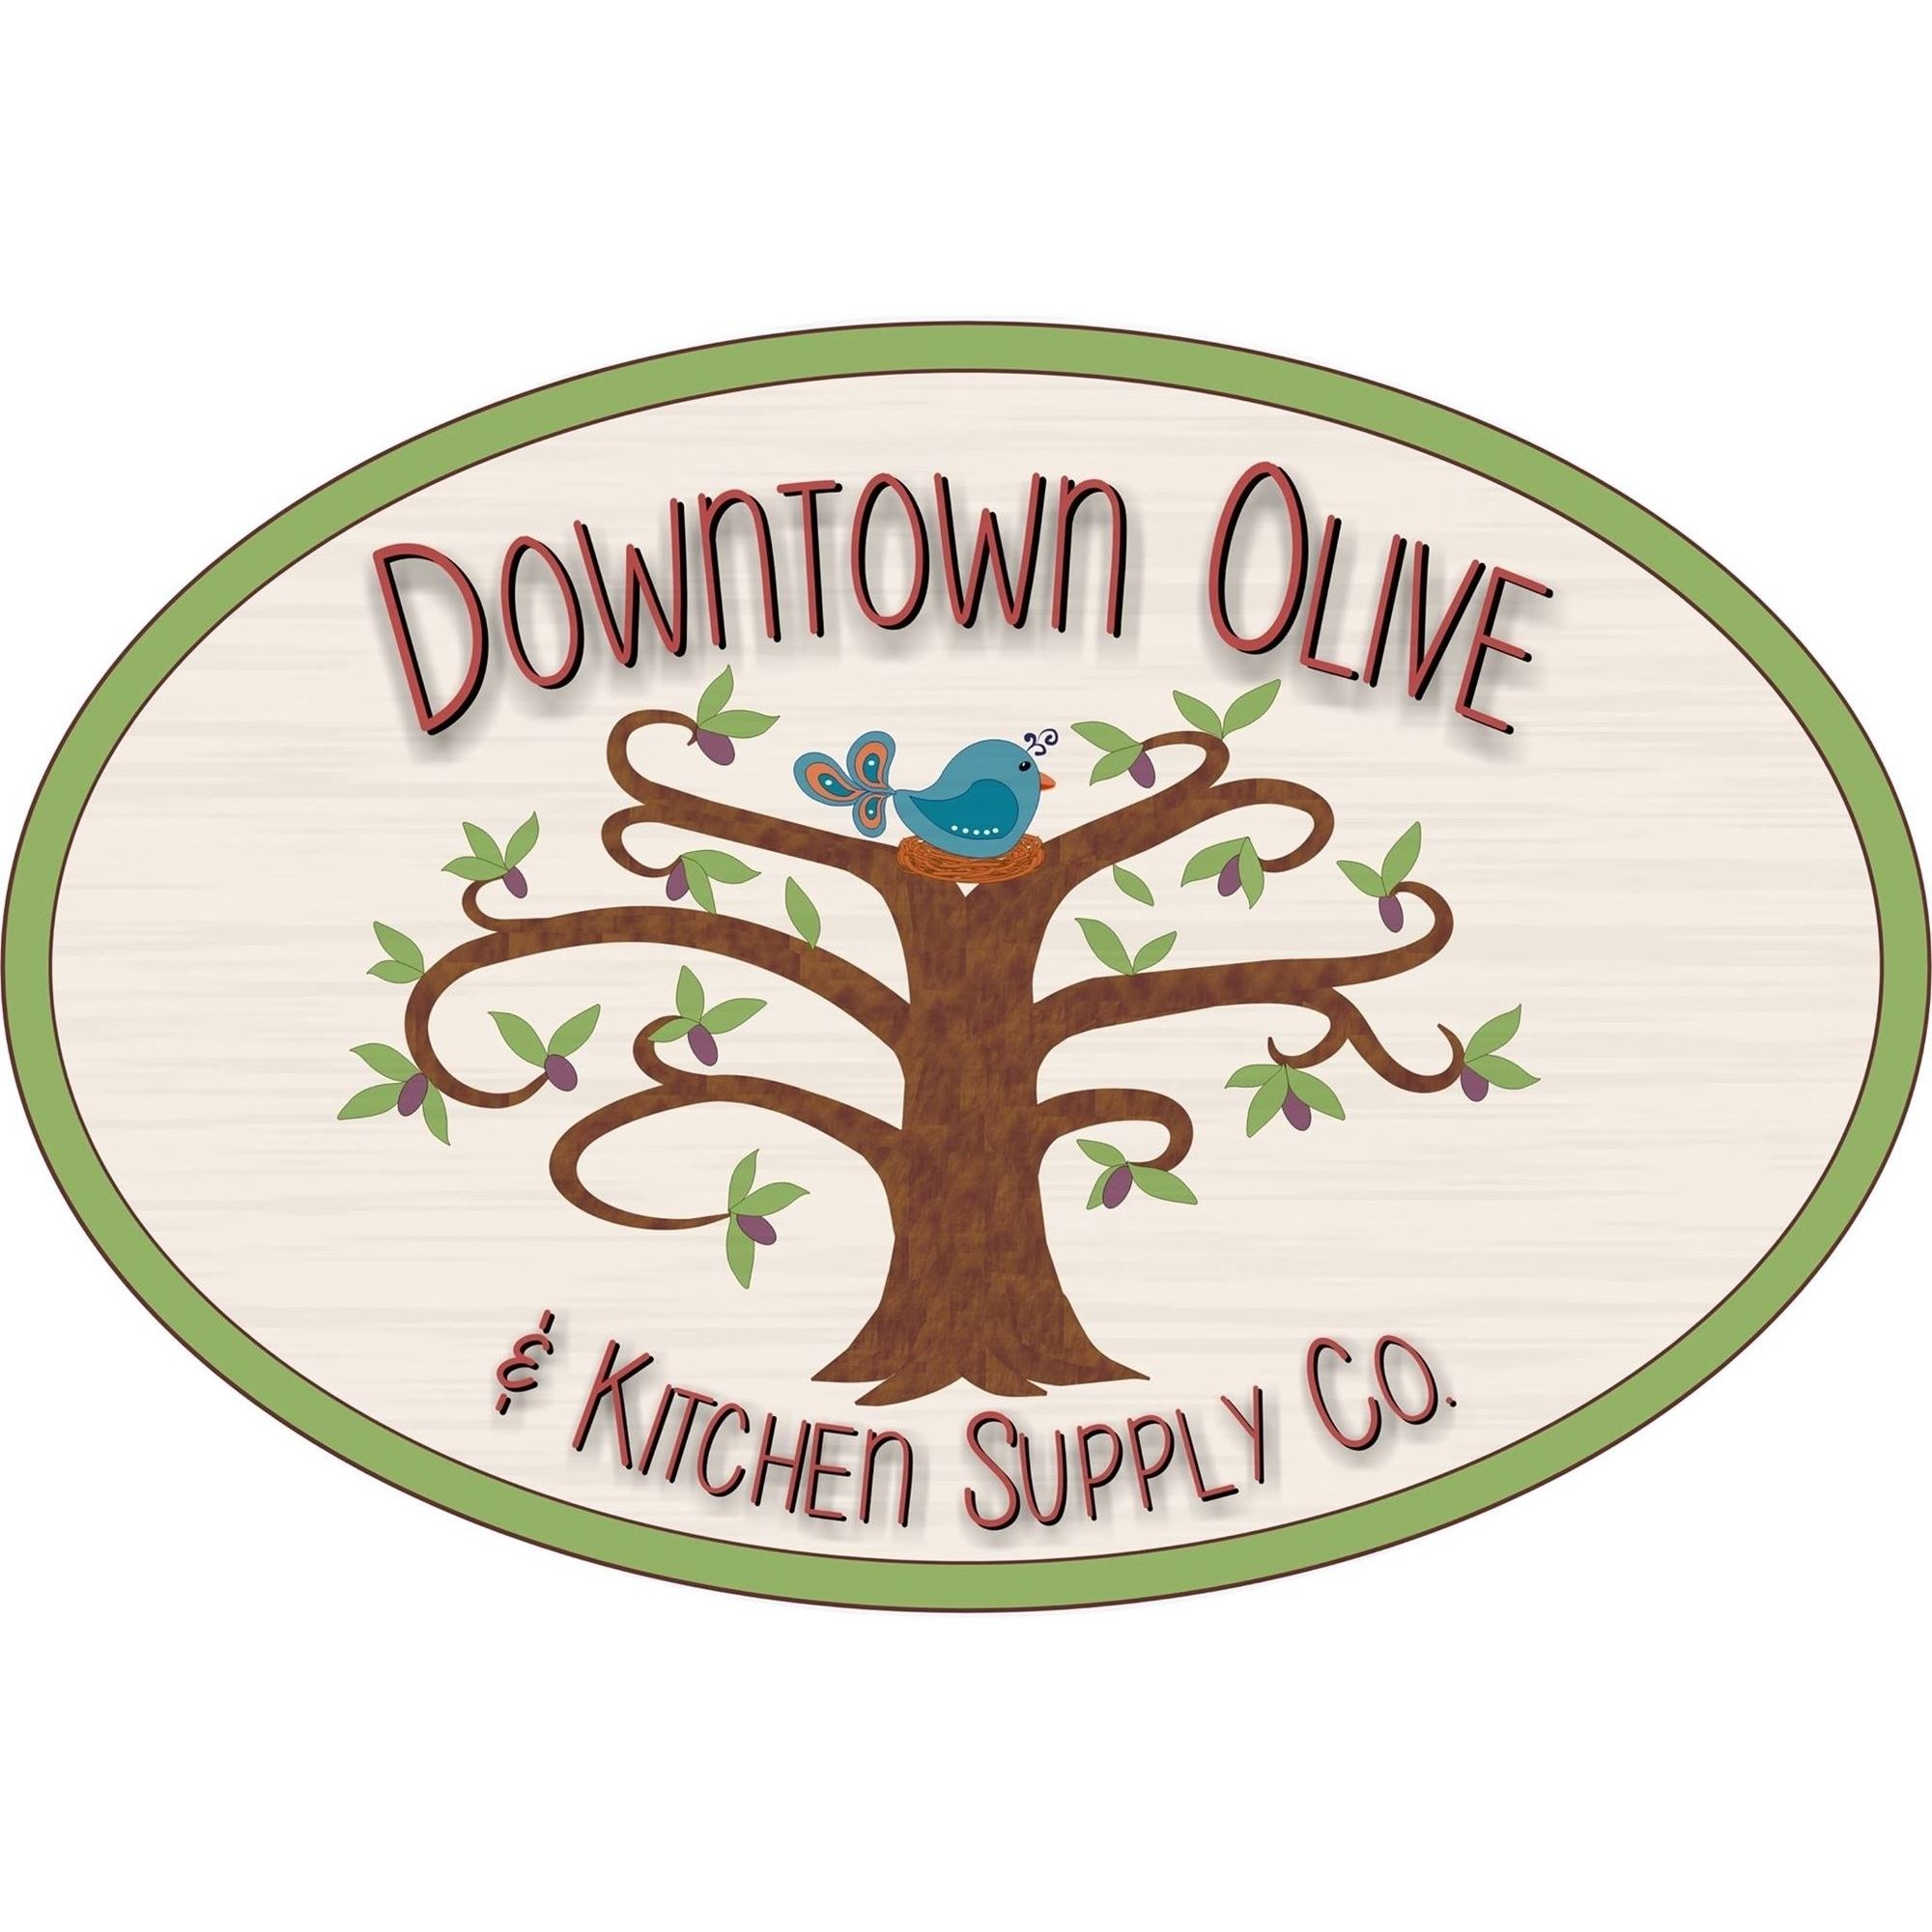 Downtown Olive & Kitchen Supply Co